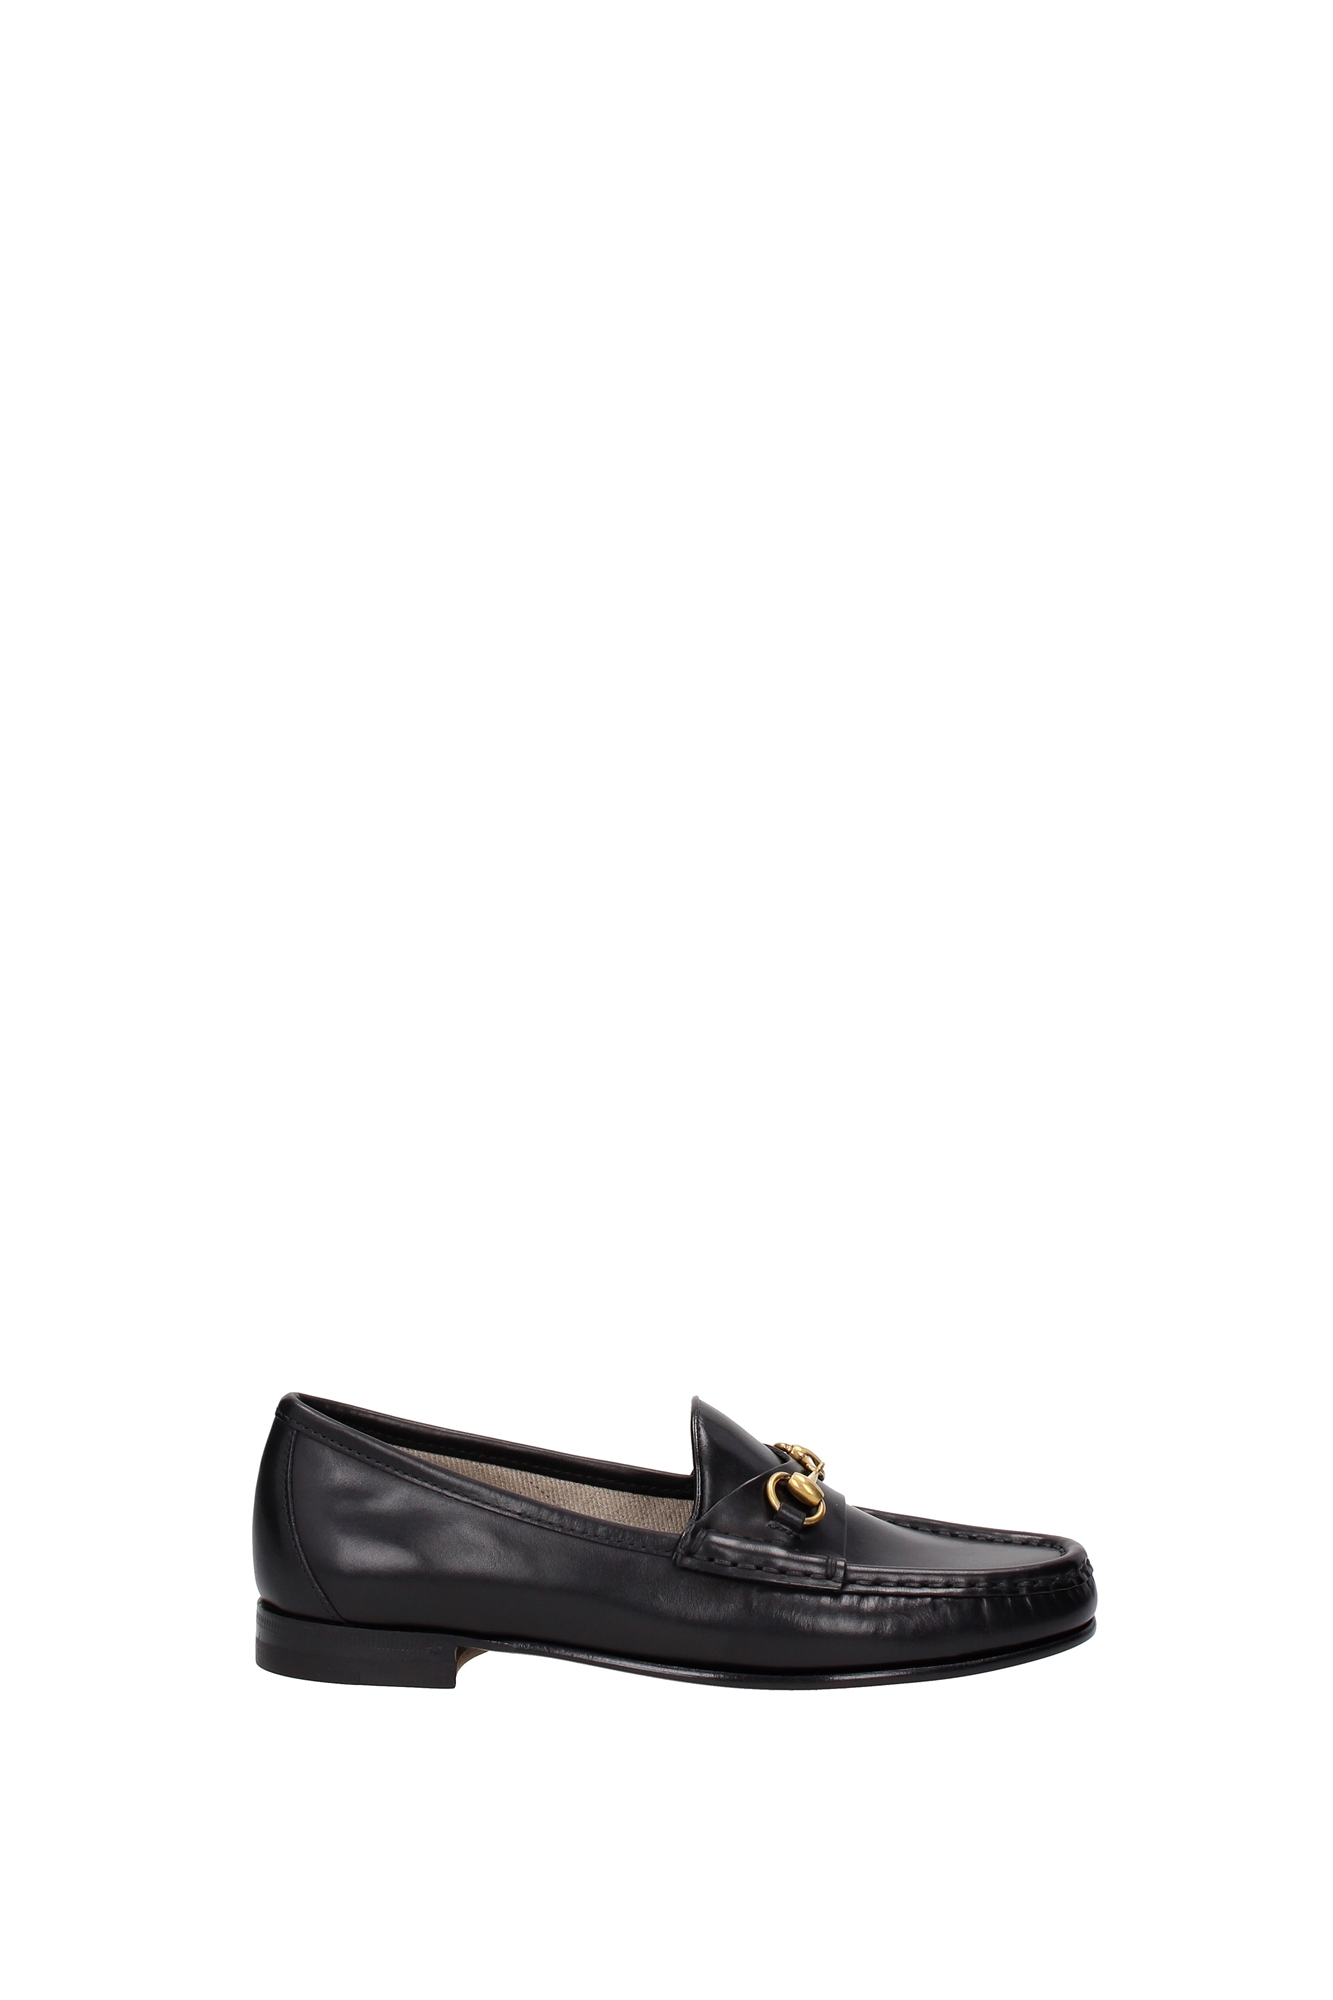 how to wear womens gucci loafers